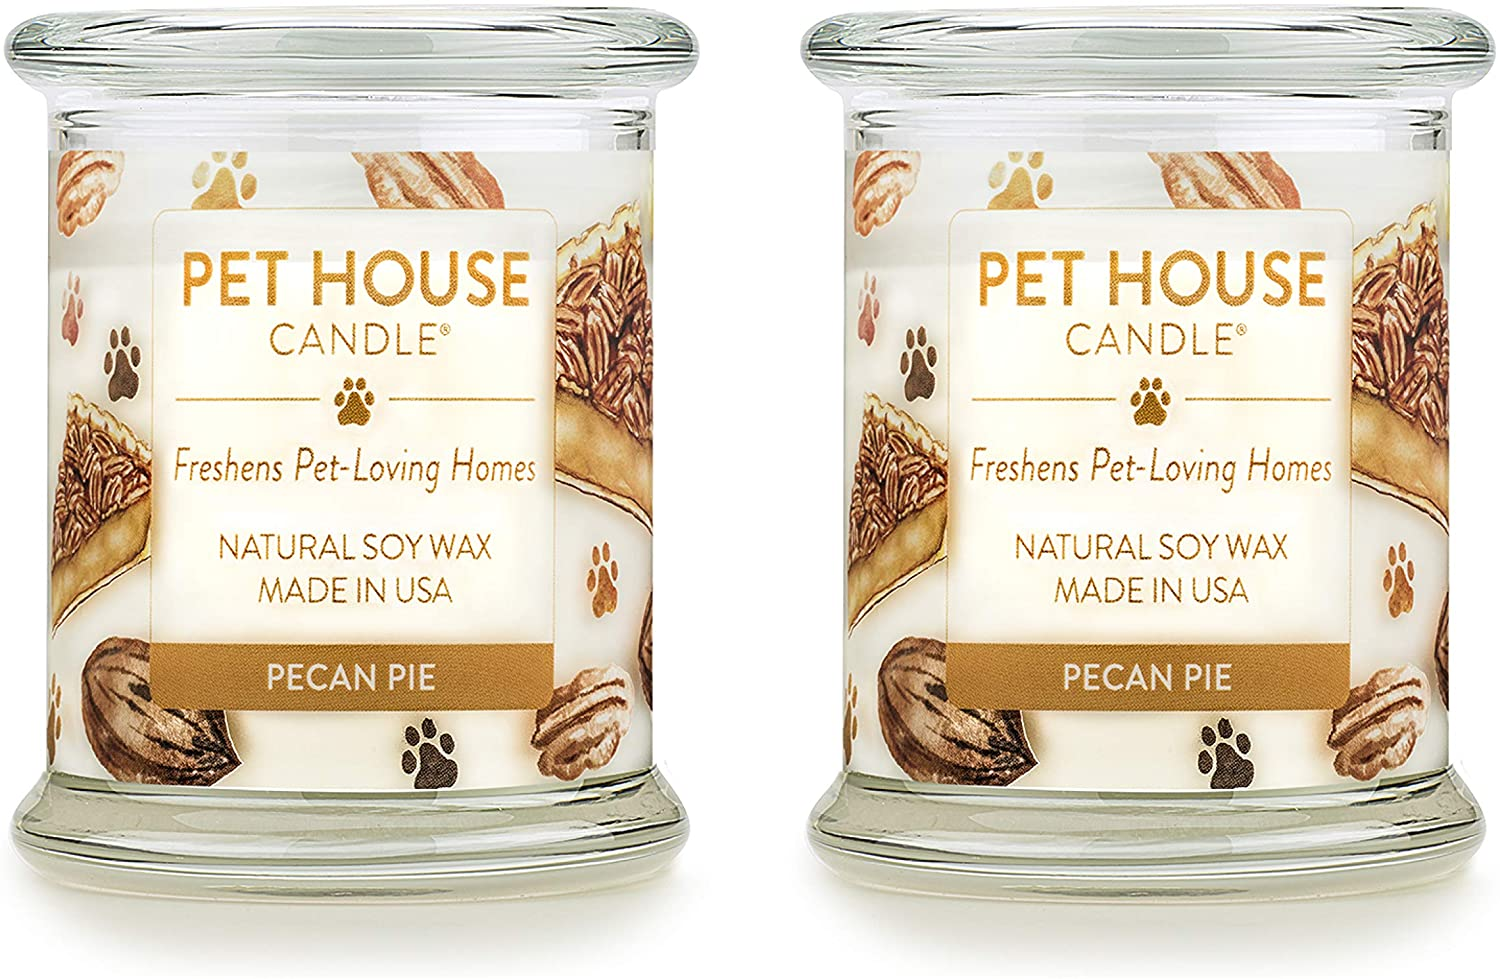 One Fur All 100% Natural Soy Wax Candle, 20 Fragrances - Pet Odor Eliminator, Up to 60 Hours Burn Time, Non-Toxic, Reusable Glass Jar Scented Candles – Pet House Candle, Pecan Pie - Pack of 2